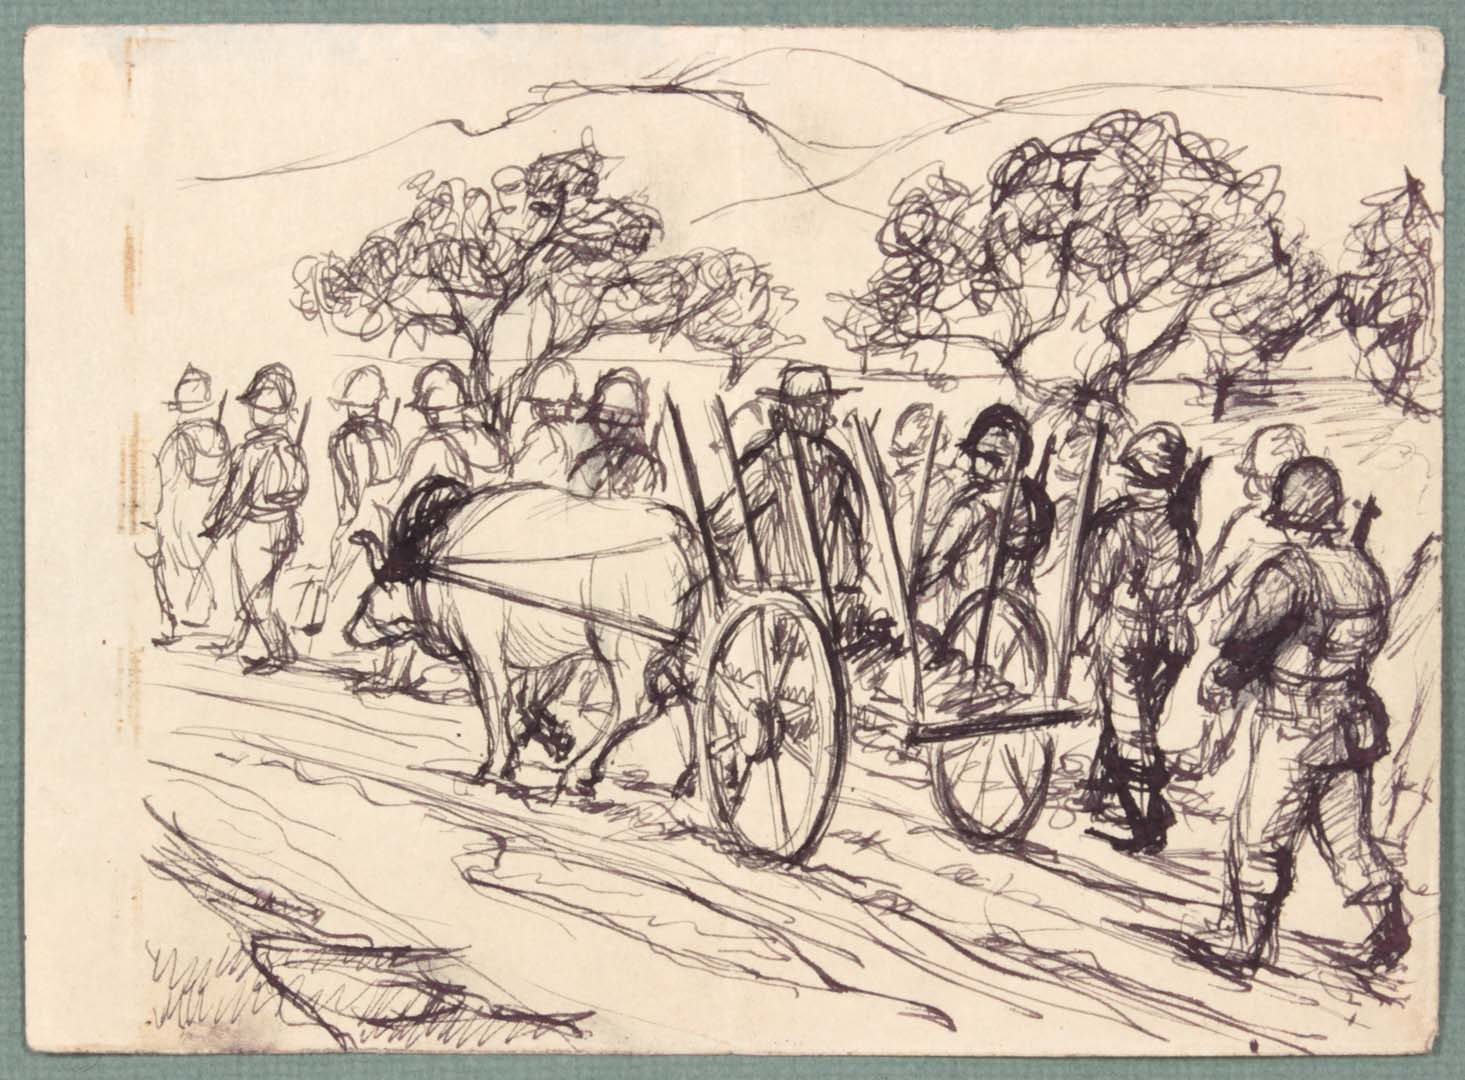 1944 NT (Ox Cart Caserta Italy) Pen and Ink on Paper 4.8125 x 6.125